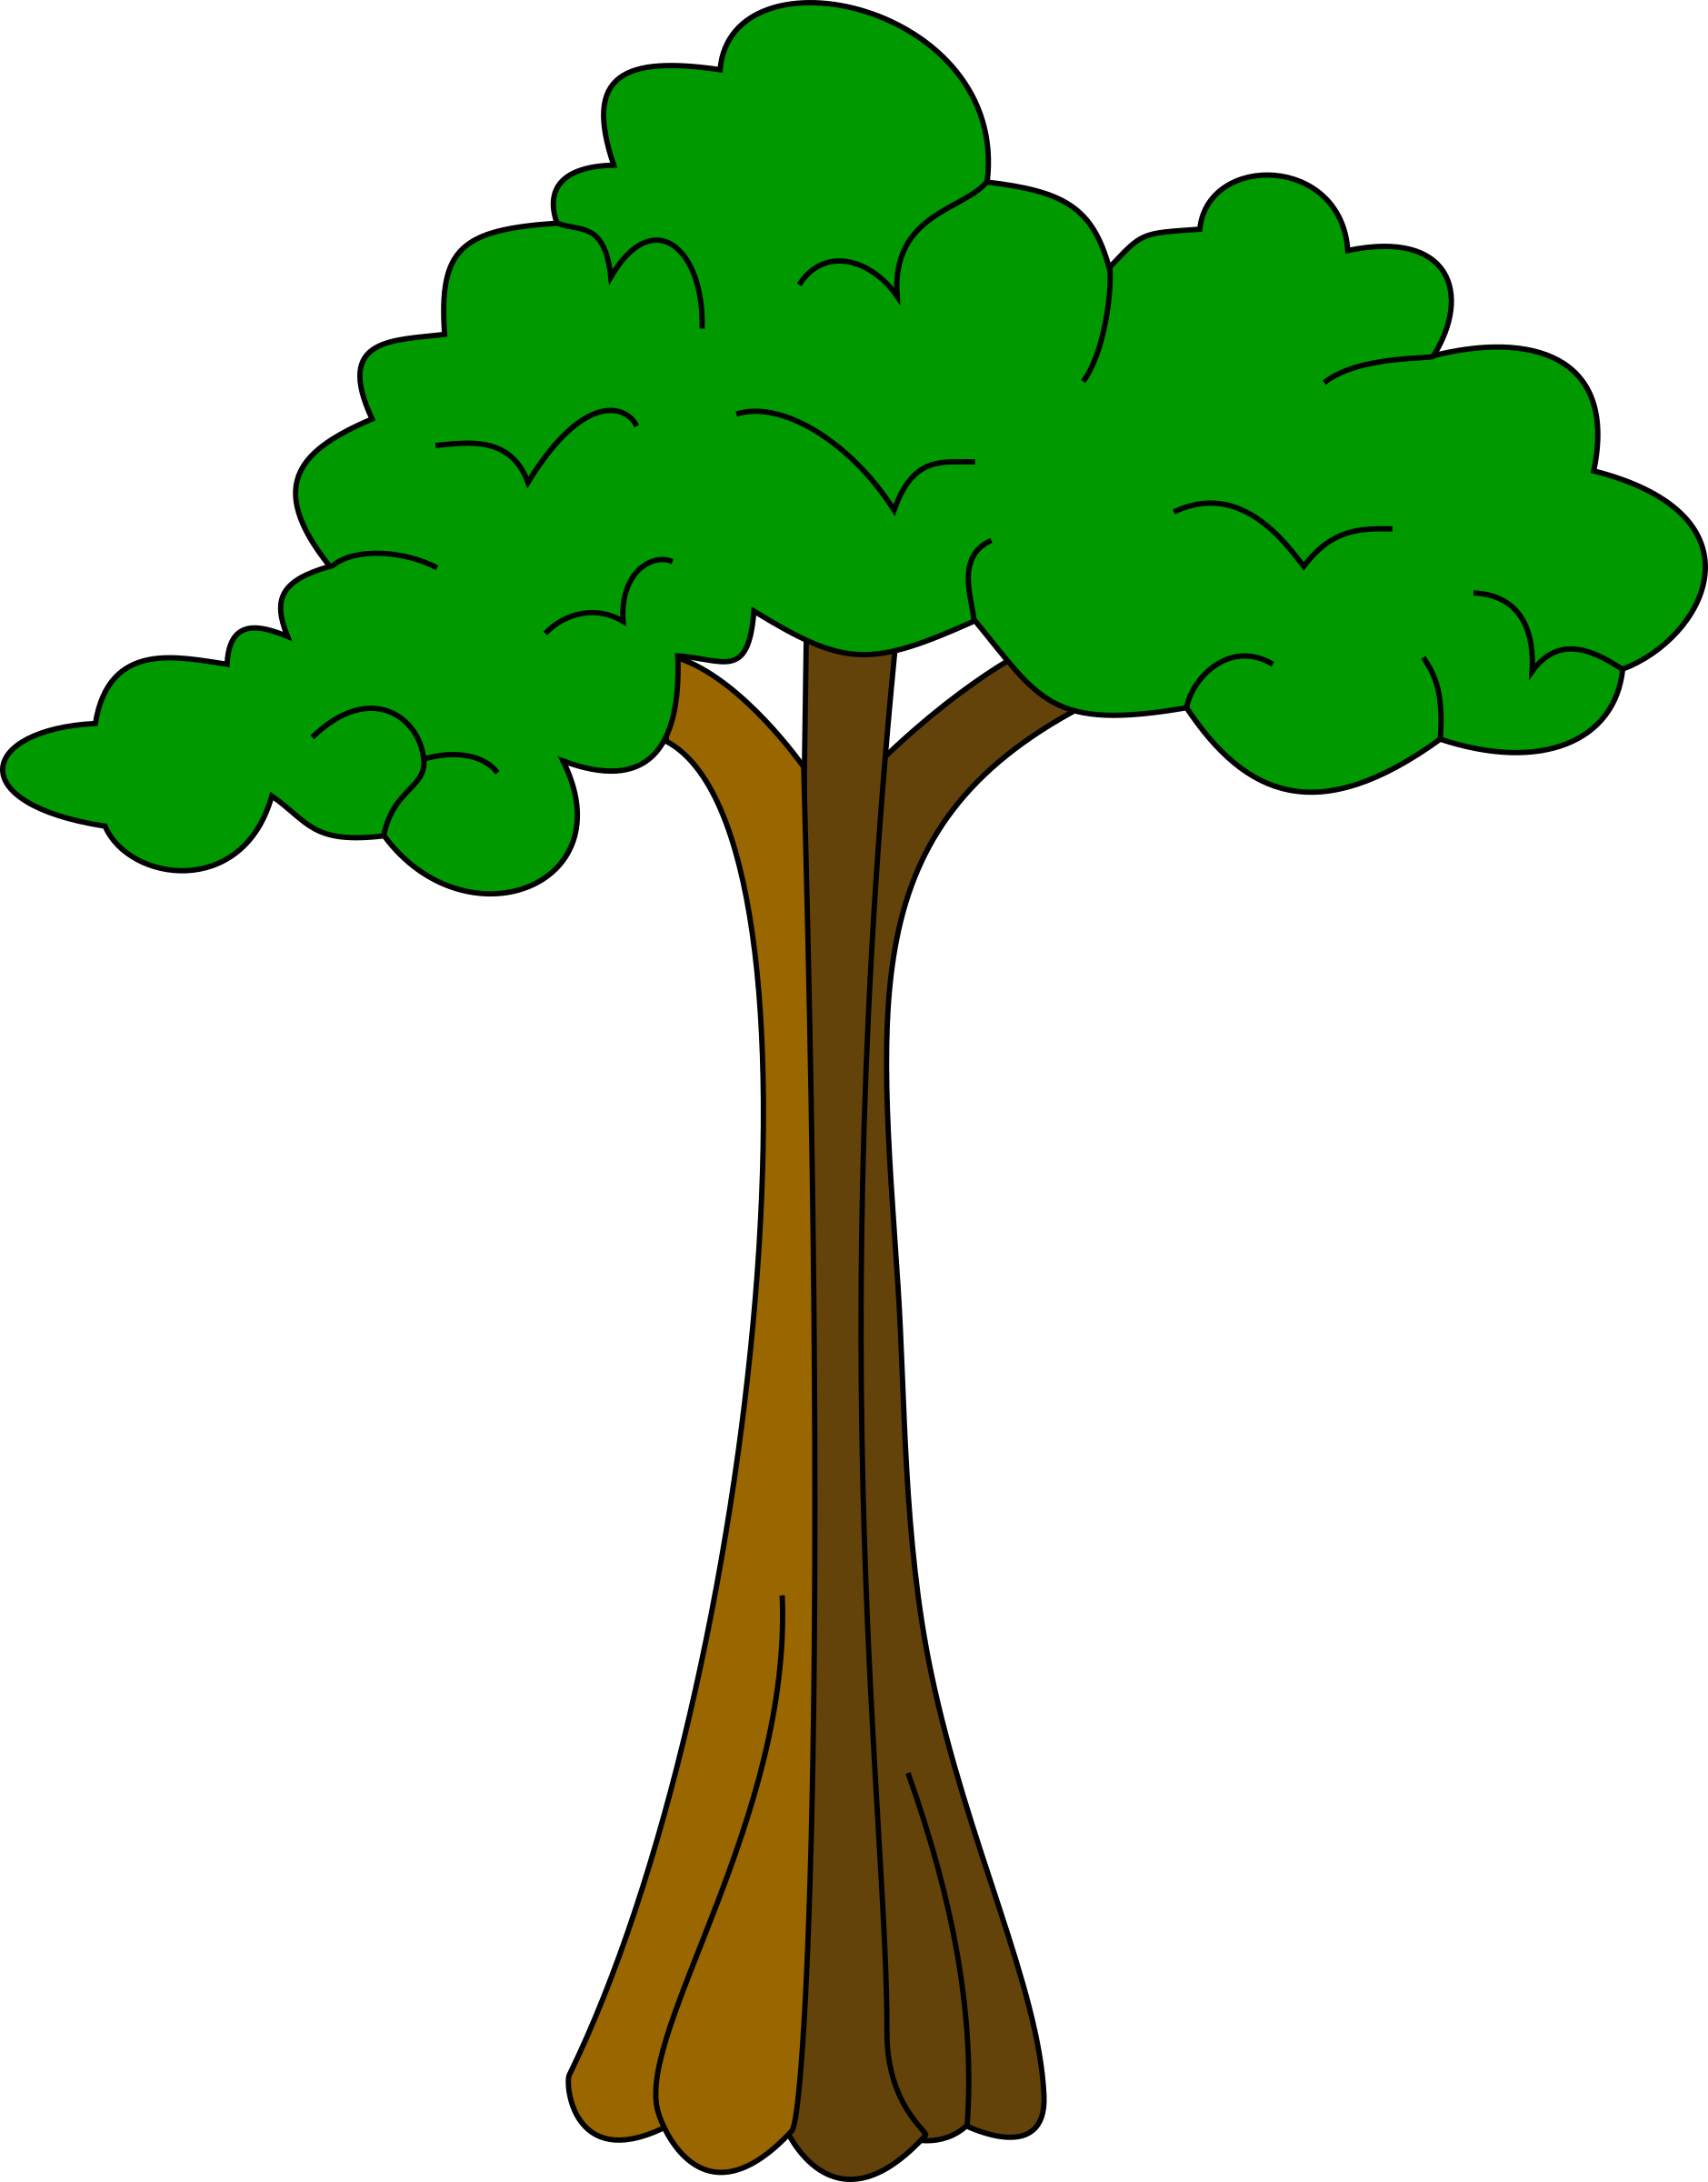 People tree clipart image free download Clipart - Silk cotton tree image free download